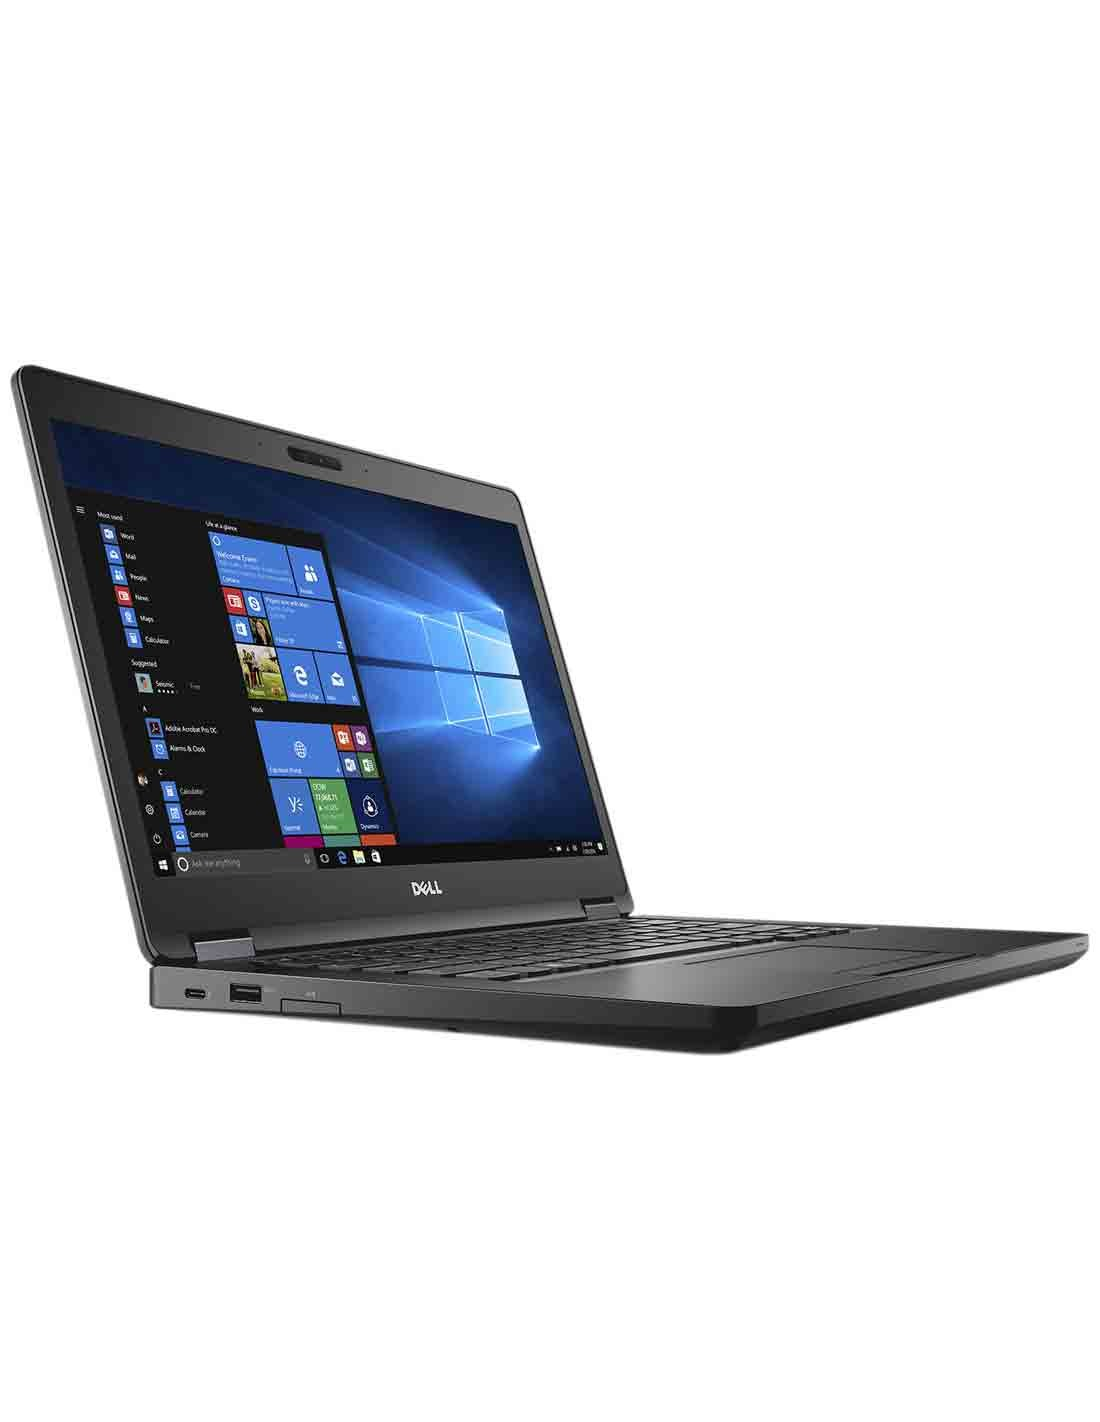 Dell Latitude 5480 Notebook i7 at the cheapest price and fast free delivery in Dubai